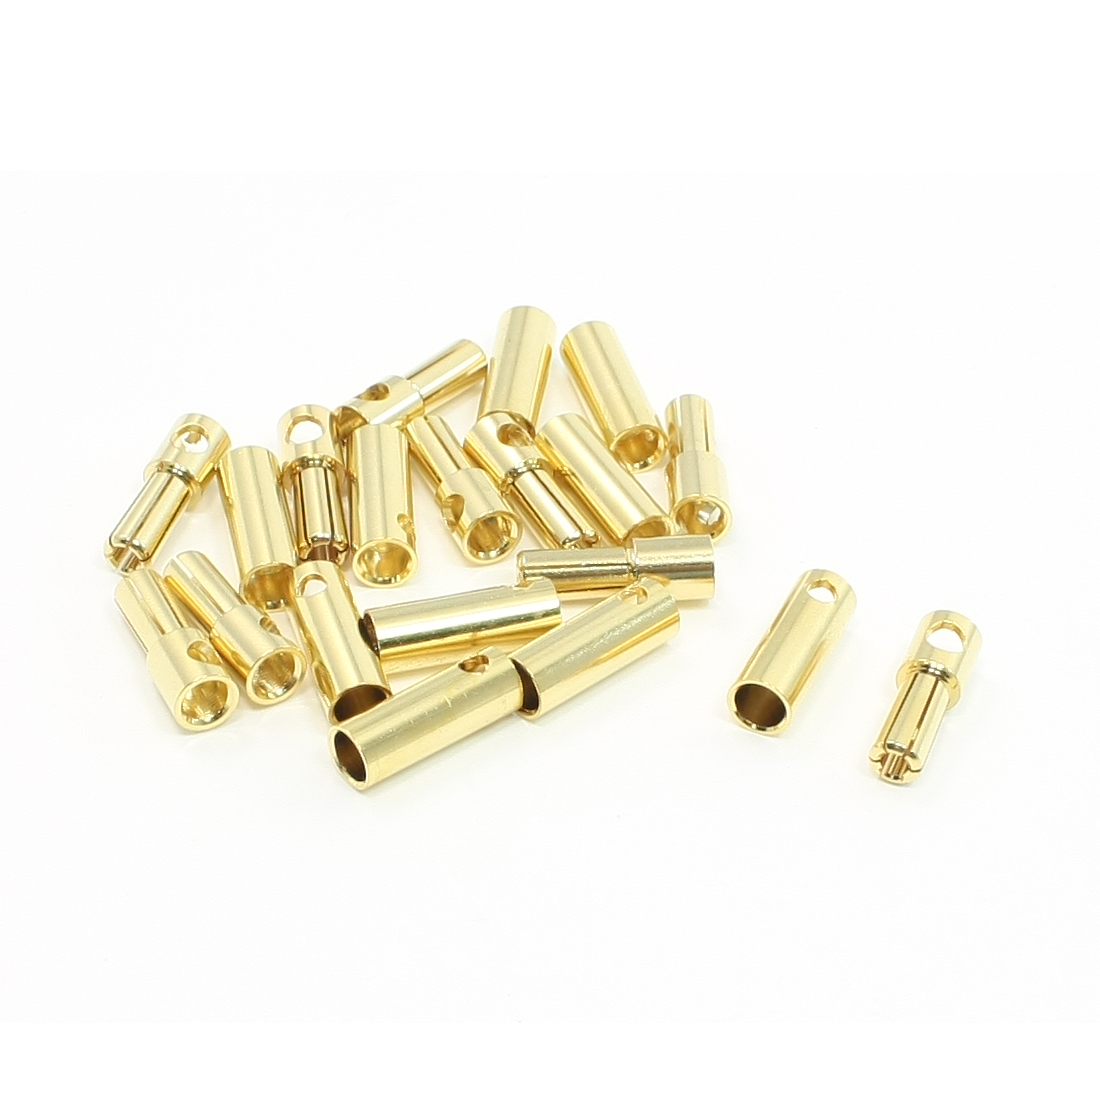 MH11589 RC PLugs 5mm Inner Dia Female Male Plug Connector 10 Pairs